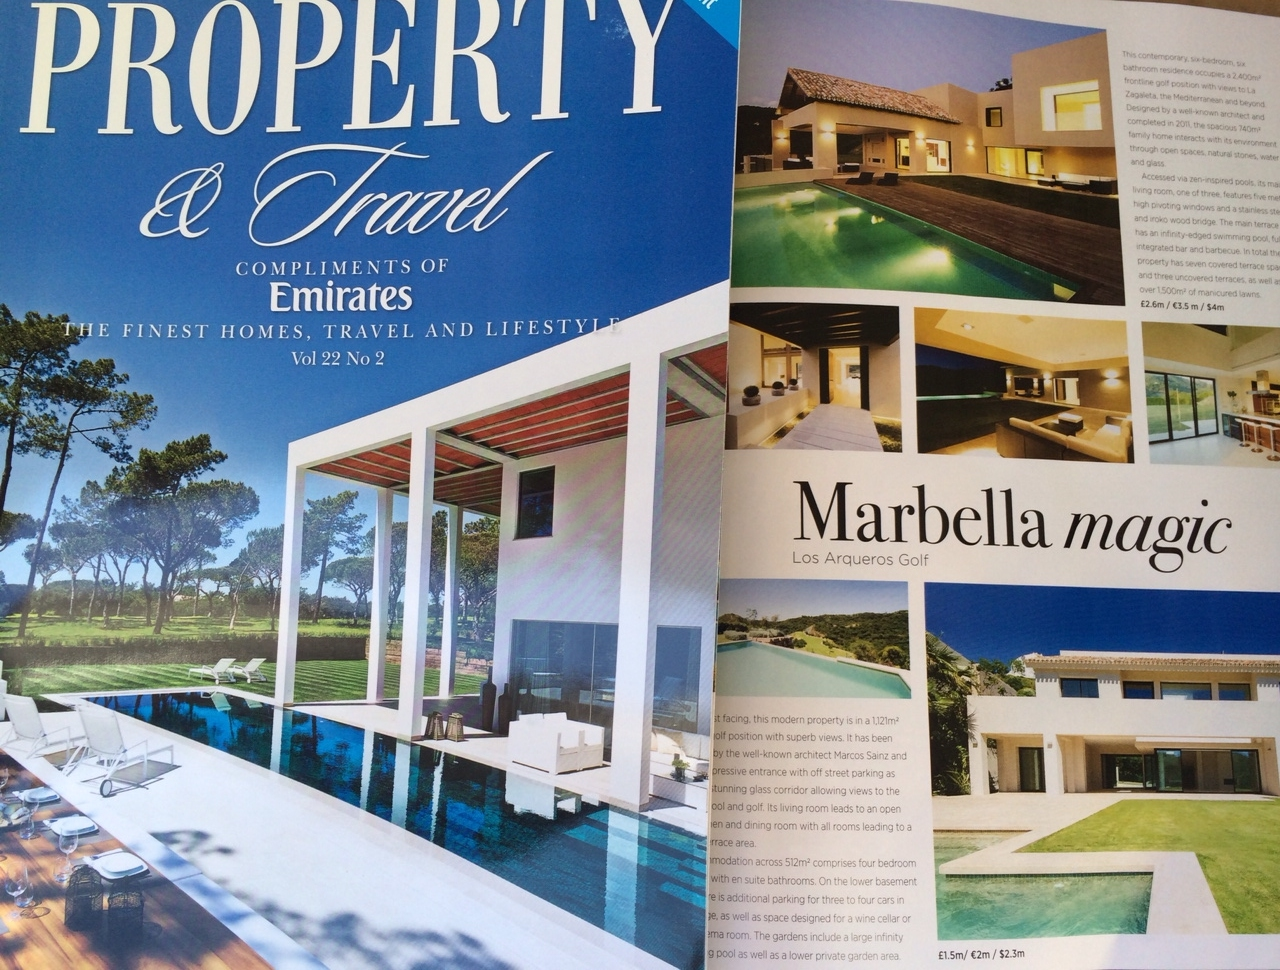 Full page feature_Property and Travel March 2015_Los Arqueros Golf properties featured in BA and Emirates lounges